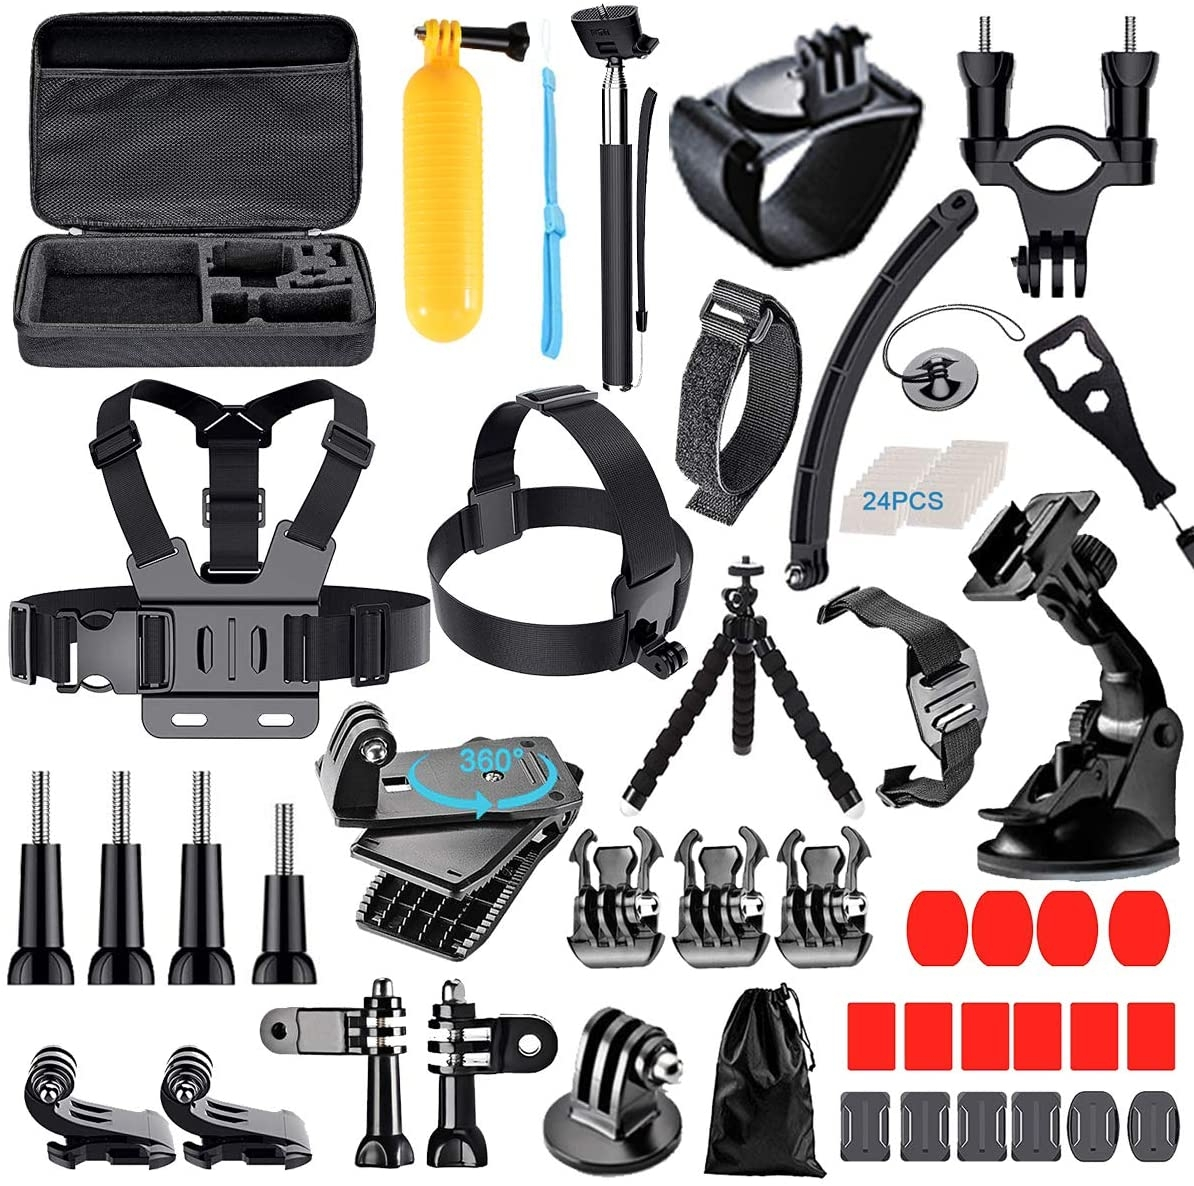 68-in-1 Camera Accessories Kit for GoPro 8/MAX/7 6 5 4 3+/Session 5/AKASO/APEMAN/DBPOWER/Campark/DJI OSMO/Lightdow/SJCAM Various Action Cameras